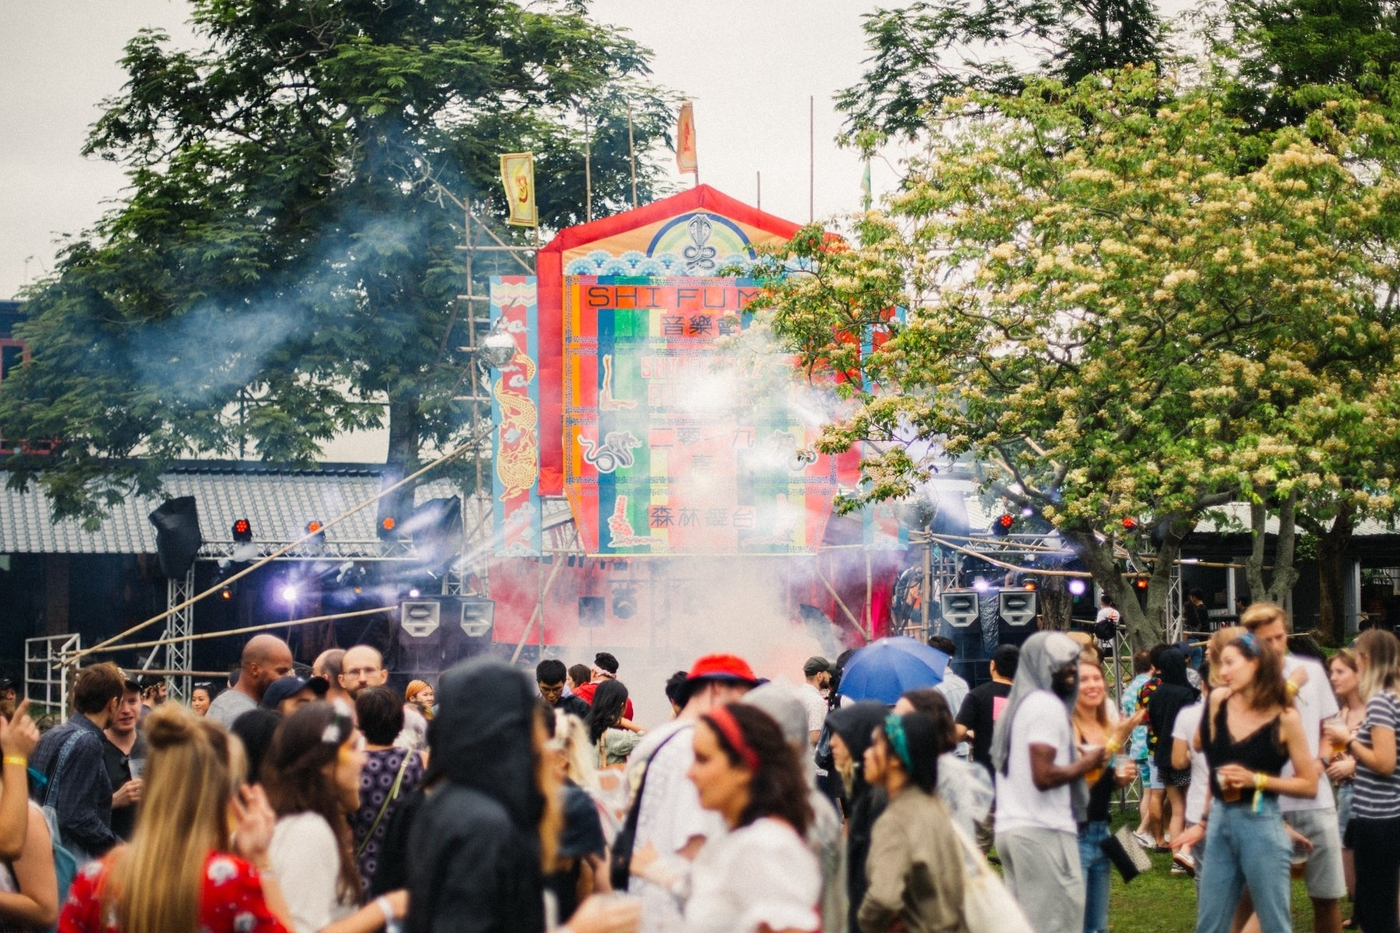 Win tickets to Shi Fu Miz and spend a weekend at the coolest festival in town